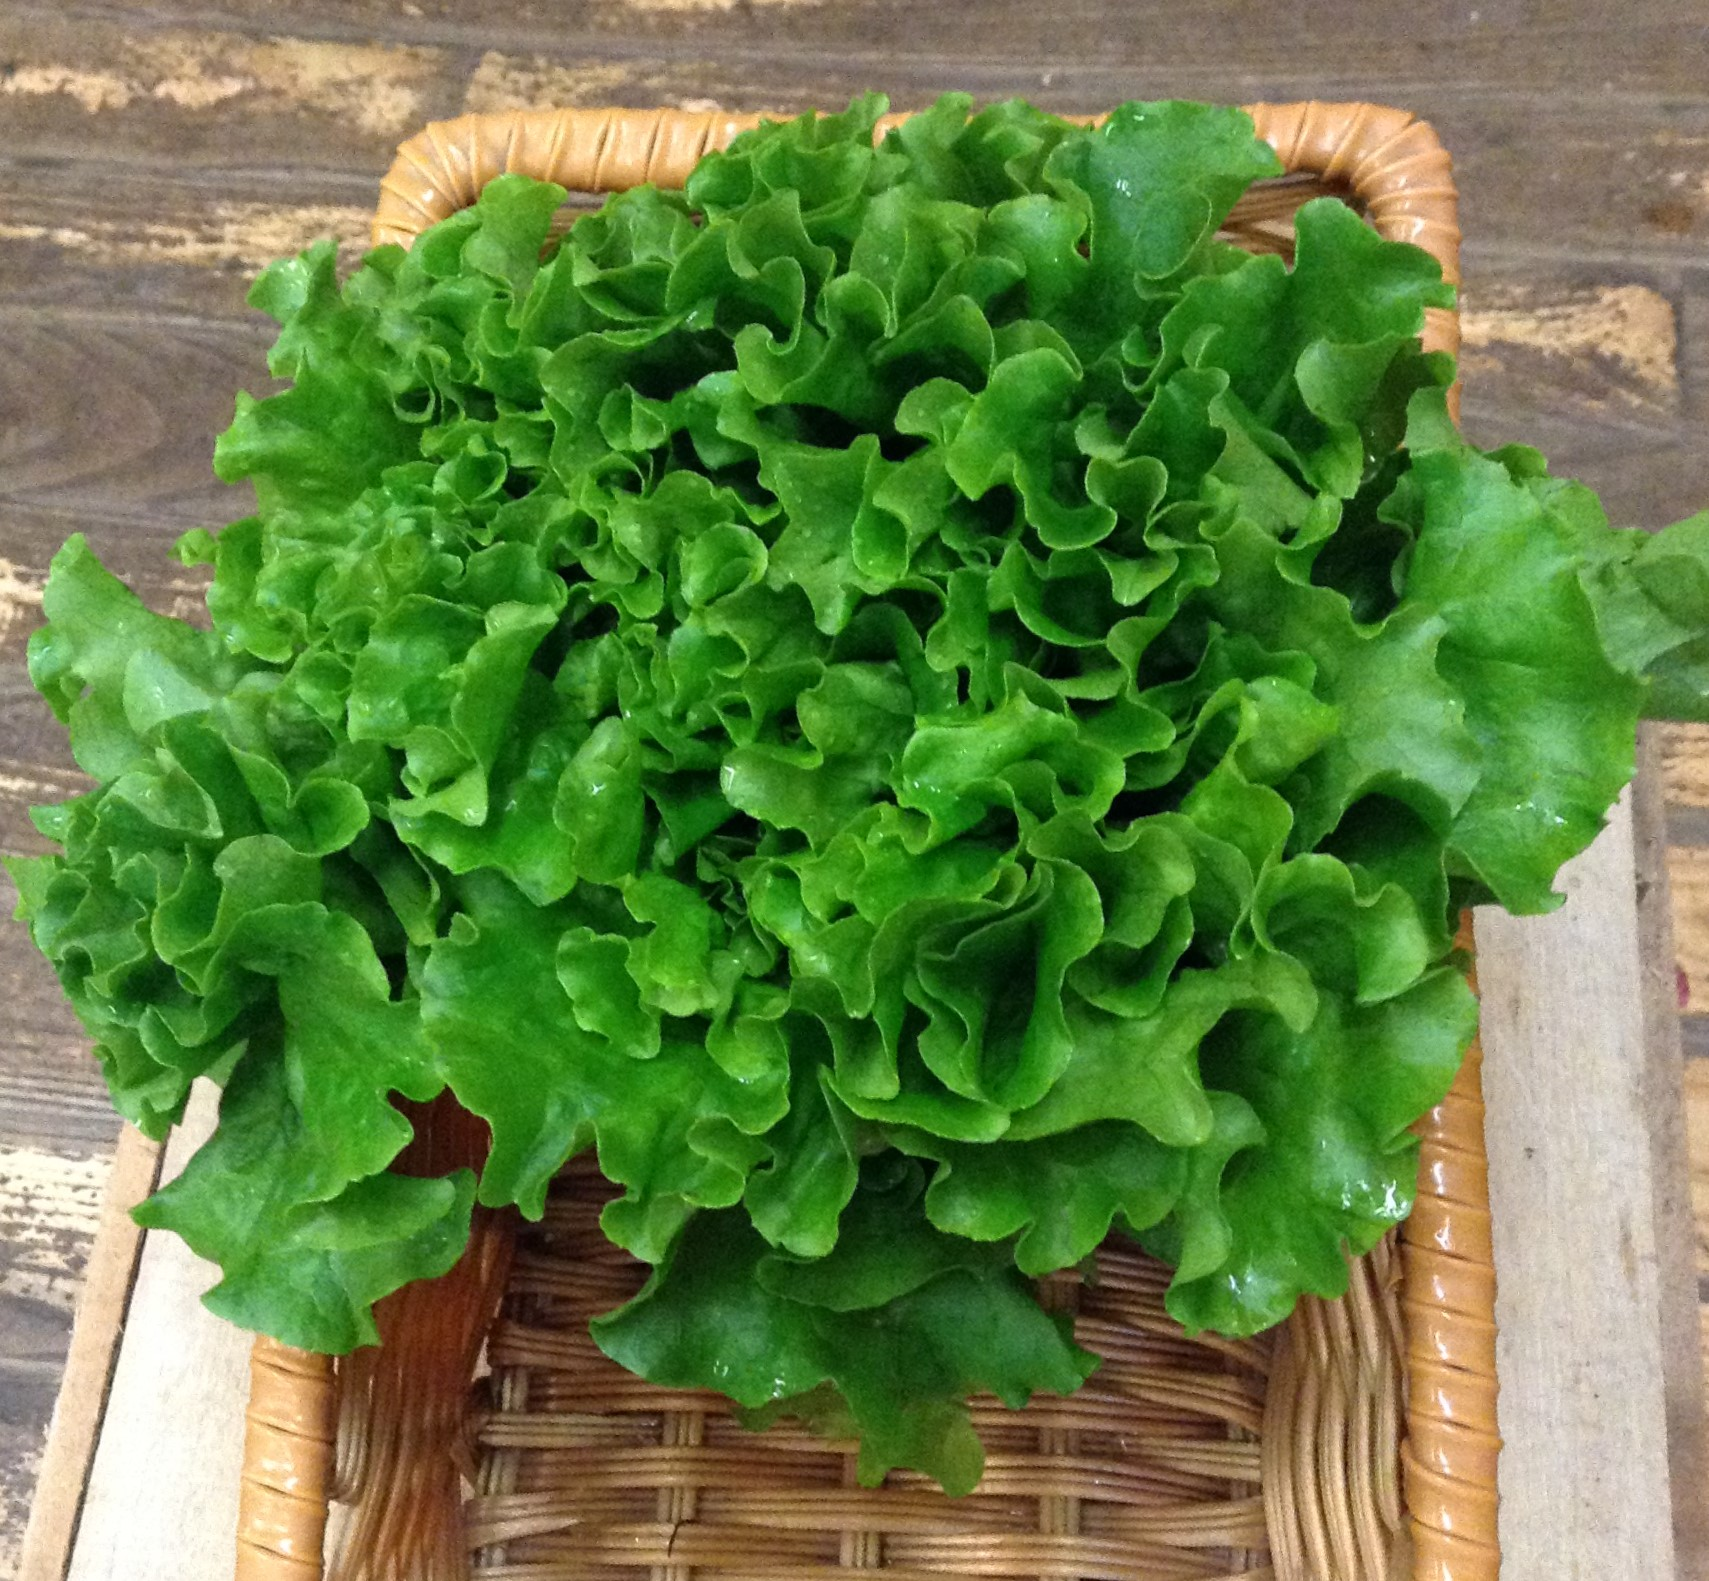 LOCAL Organic Green Leaf Lettuce